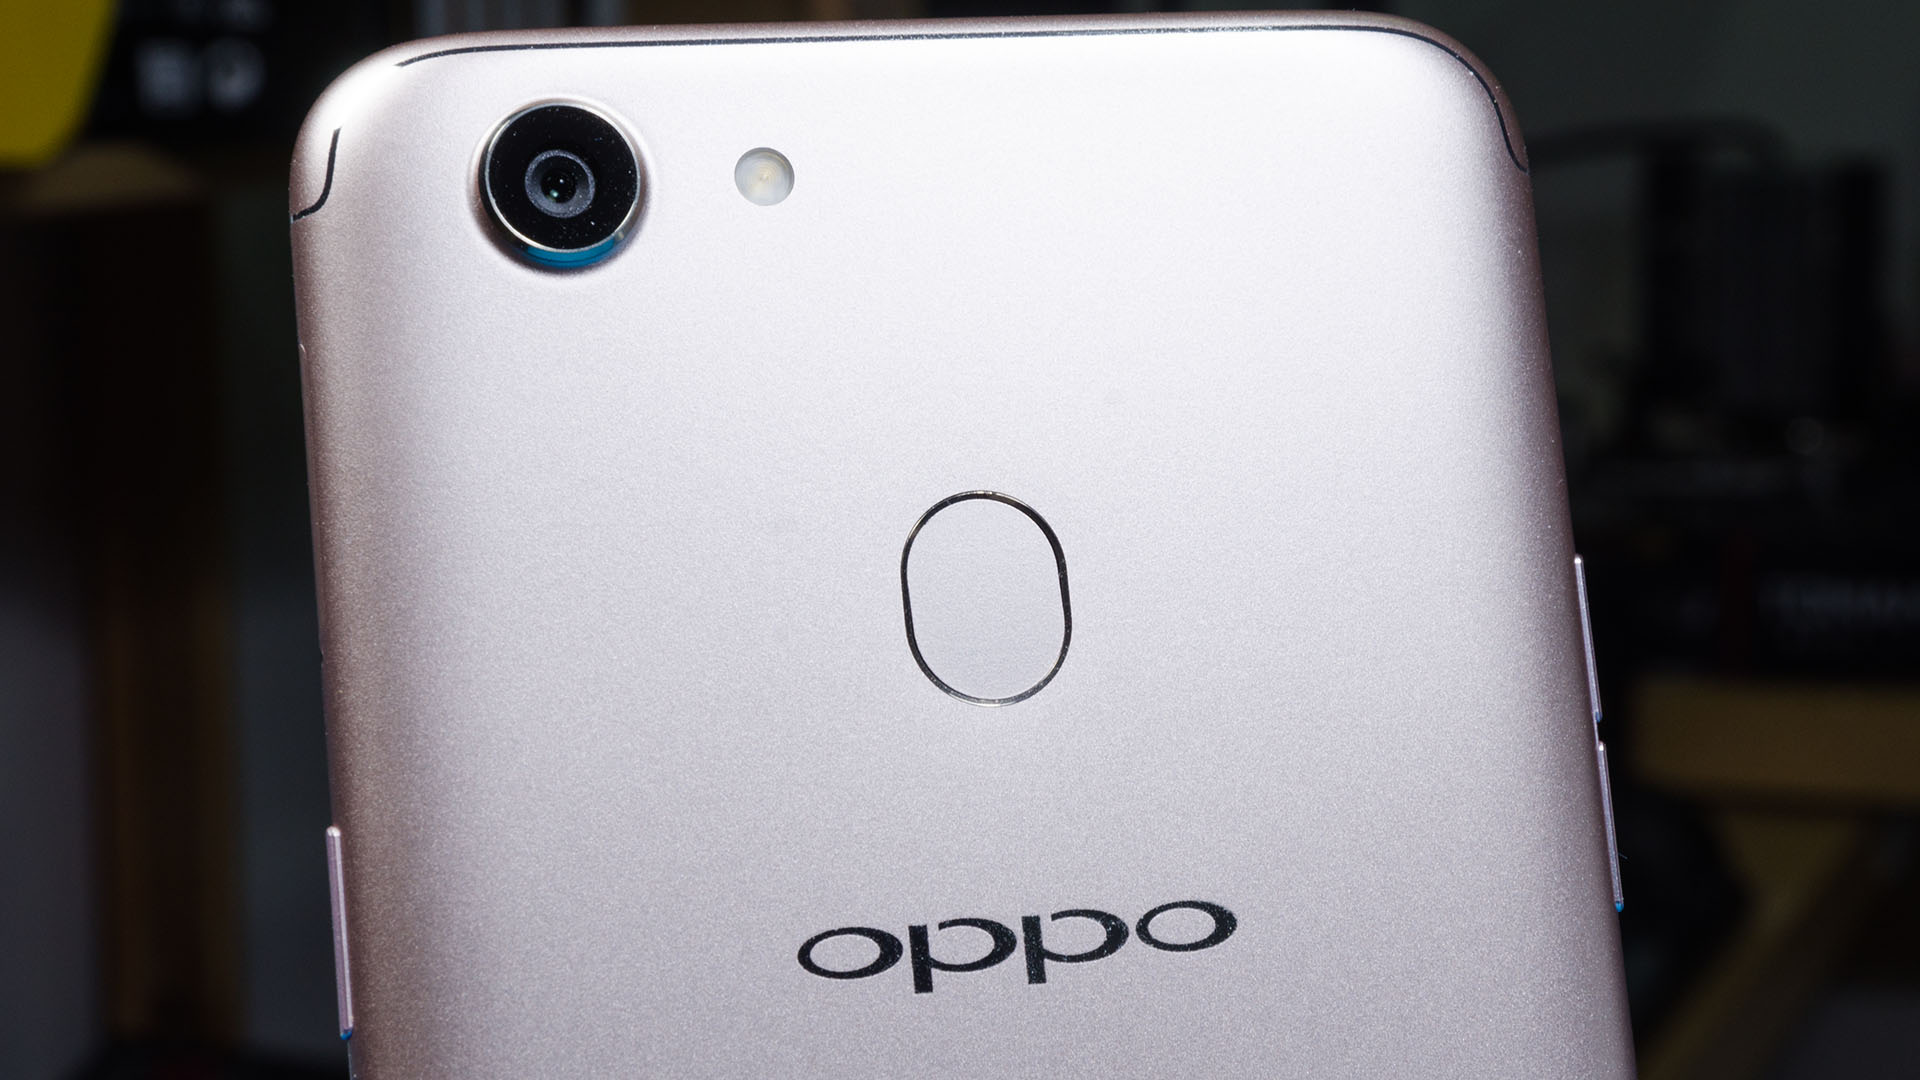 Counterpoint oppo highest demand in q3 2017 for asian smartphone oppo f5 header stopboris Image collections